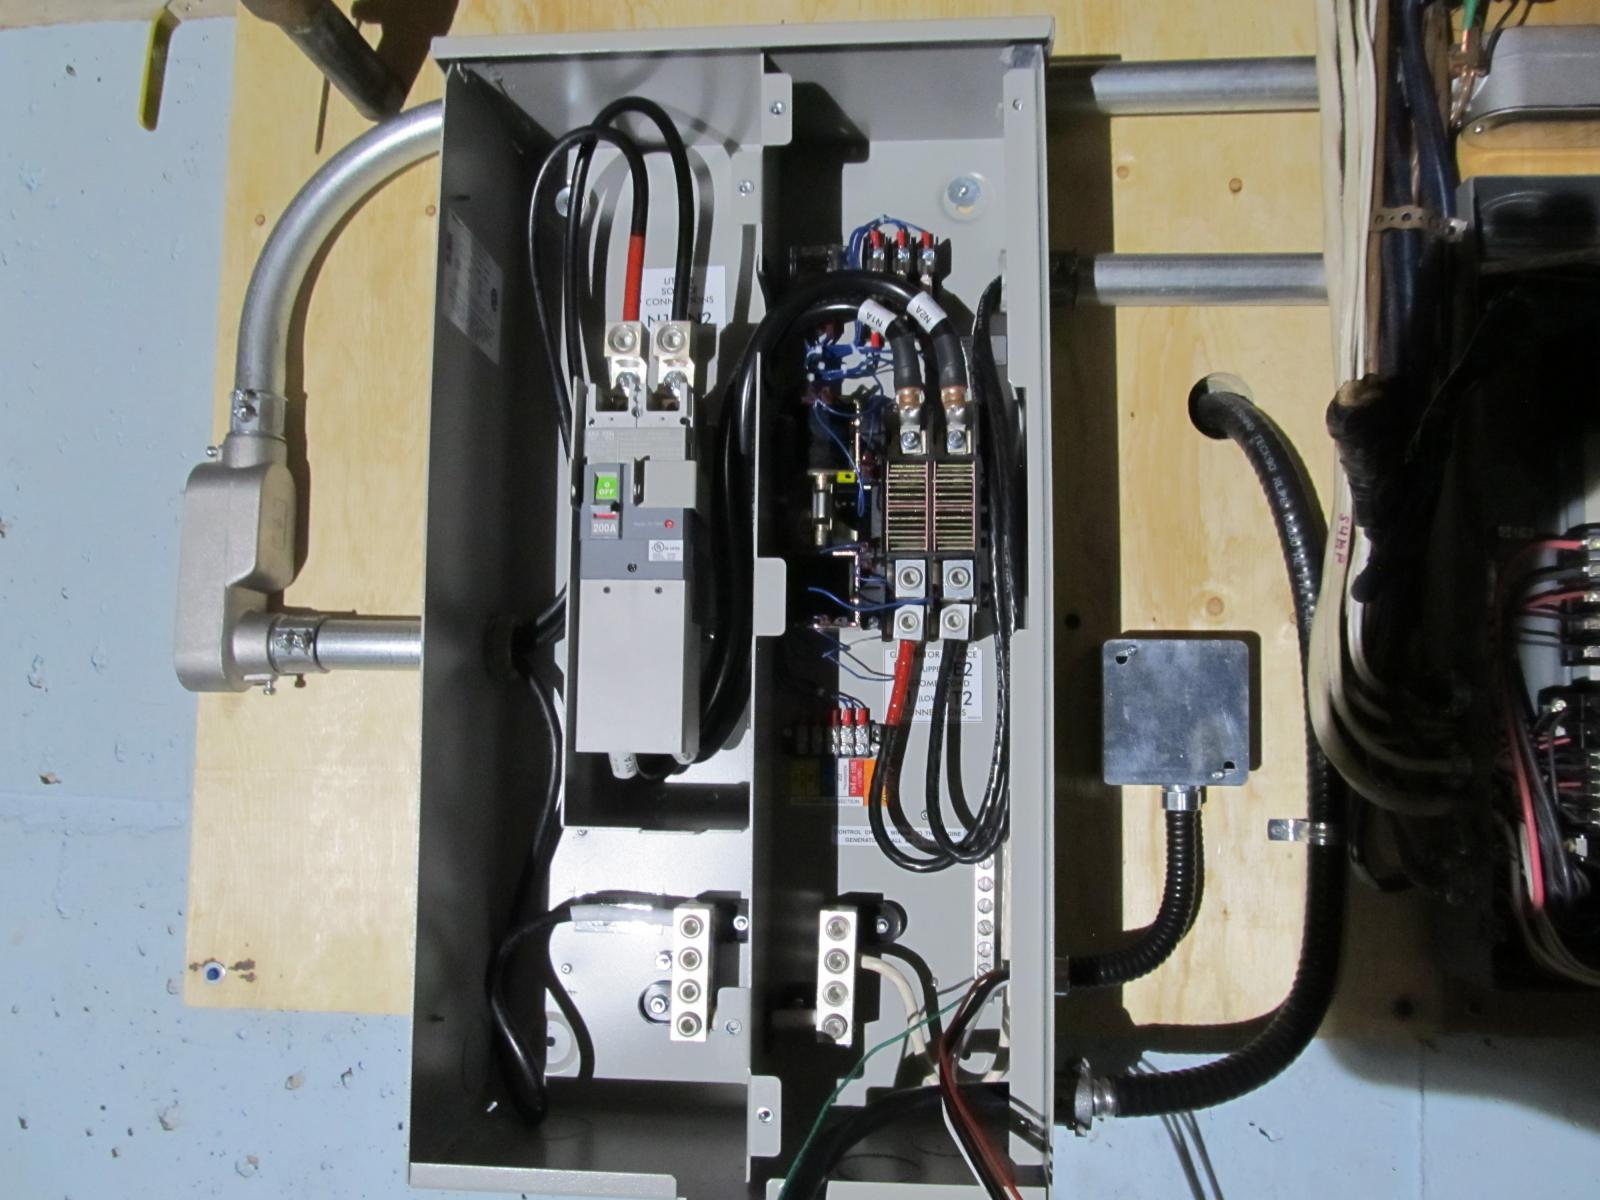 Honeywell 200 Amp Transfer Switch Wiring Diagram 48 Automatic 119256 Hodgy Albums My 17 Kw Standby Generator Picture38737 Img 5327 Installed A